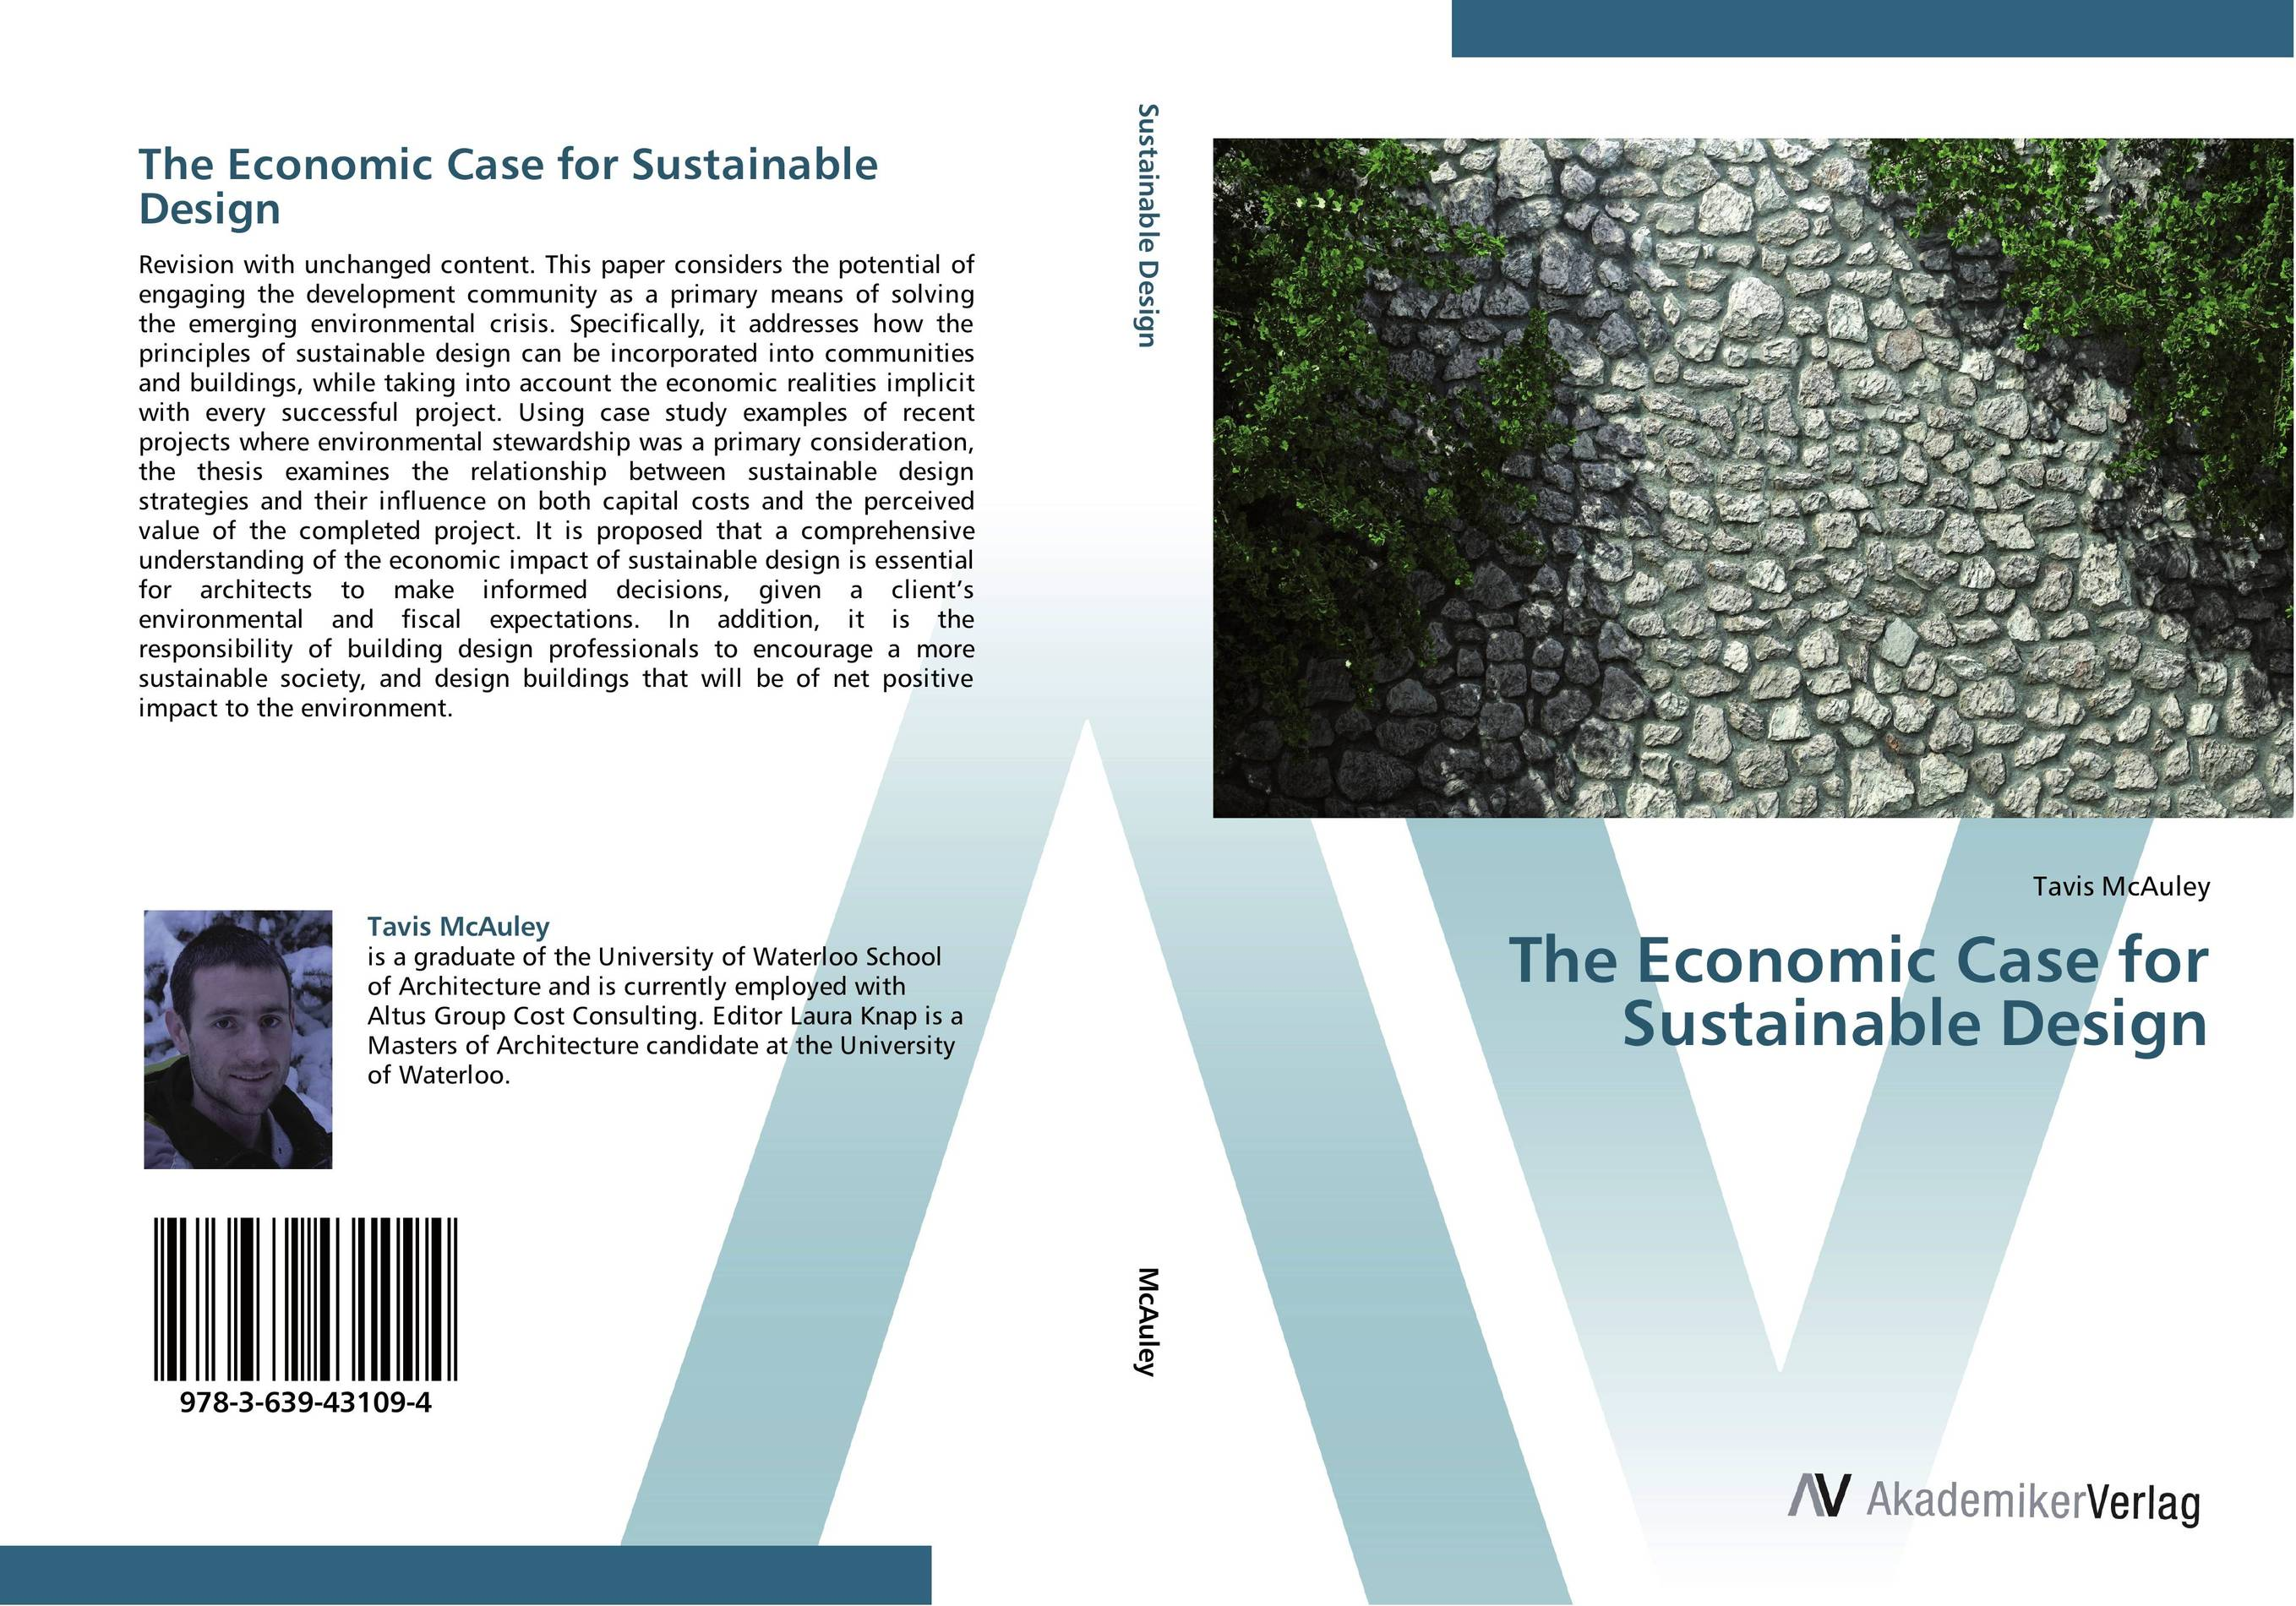 The Economic Case for Sustainable Design the economic principles of confucius and his sch